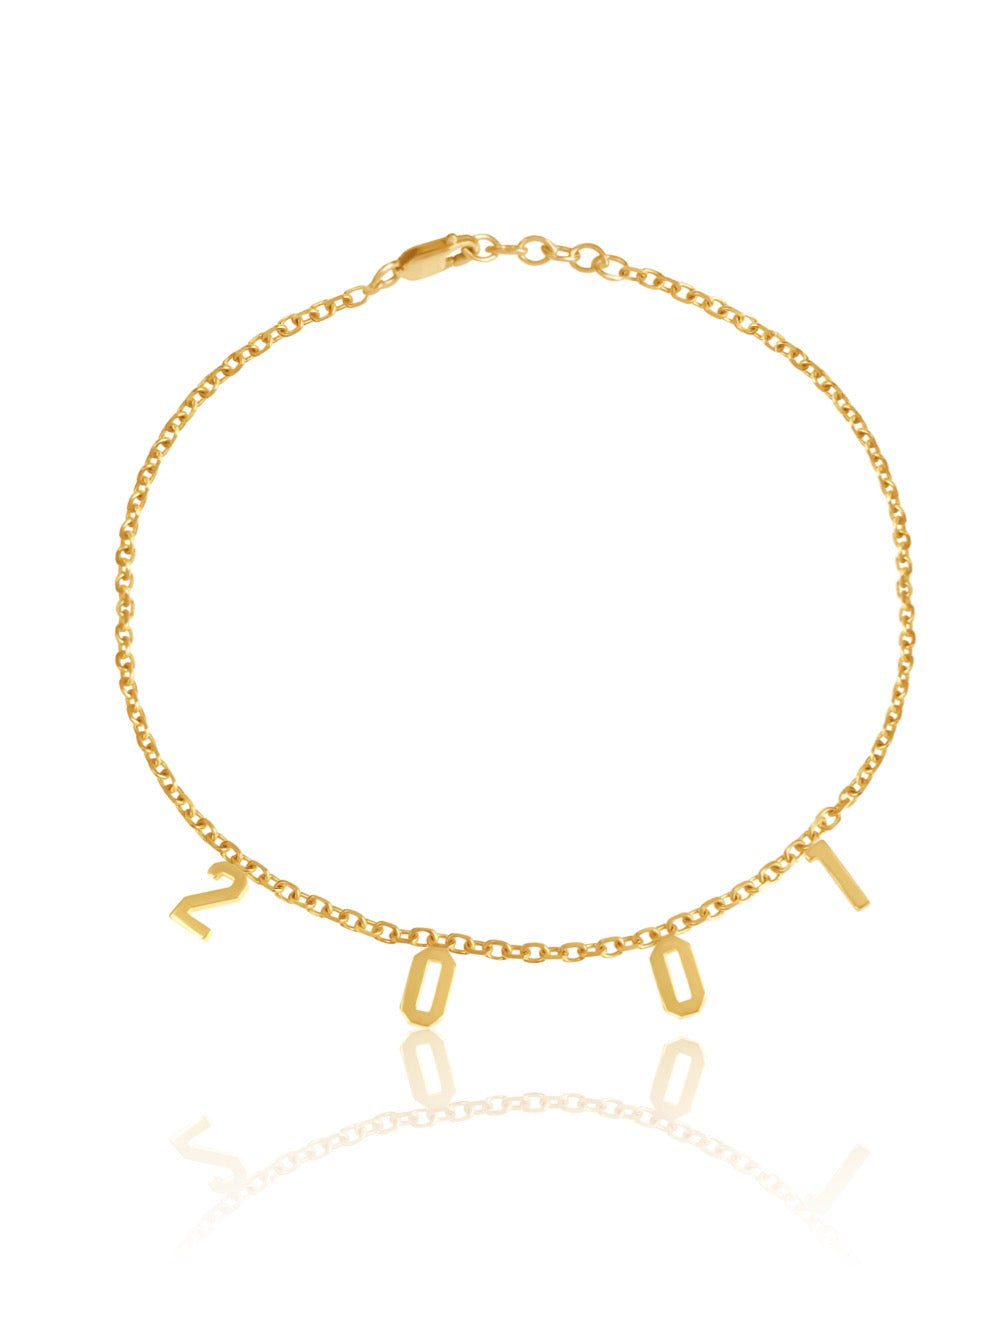 14k Gold personalized Number Bracelet